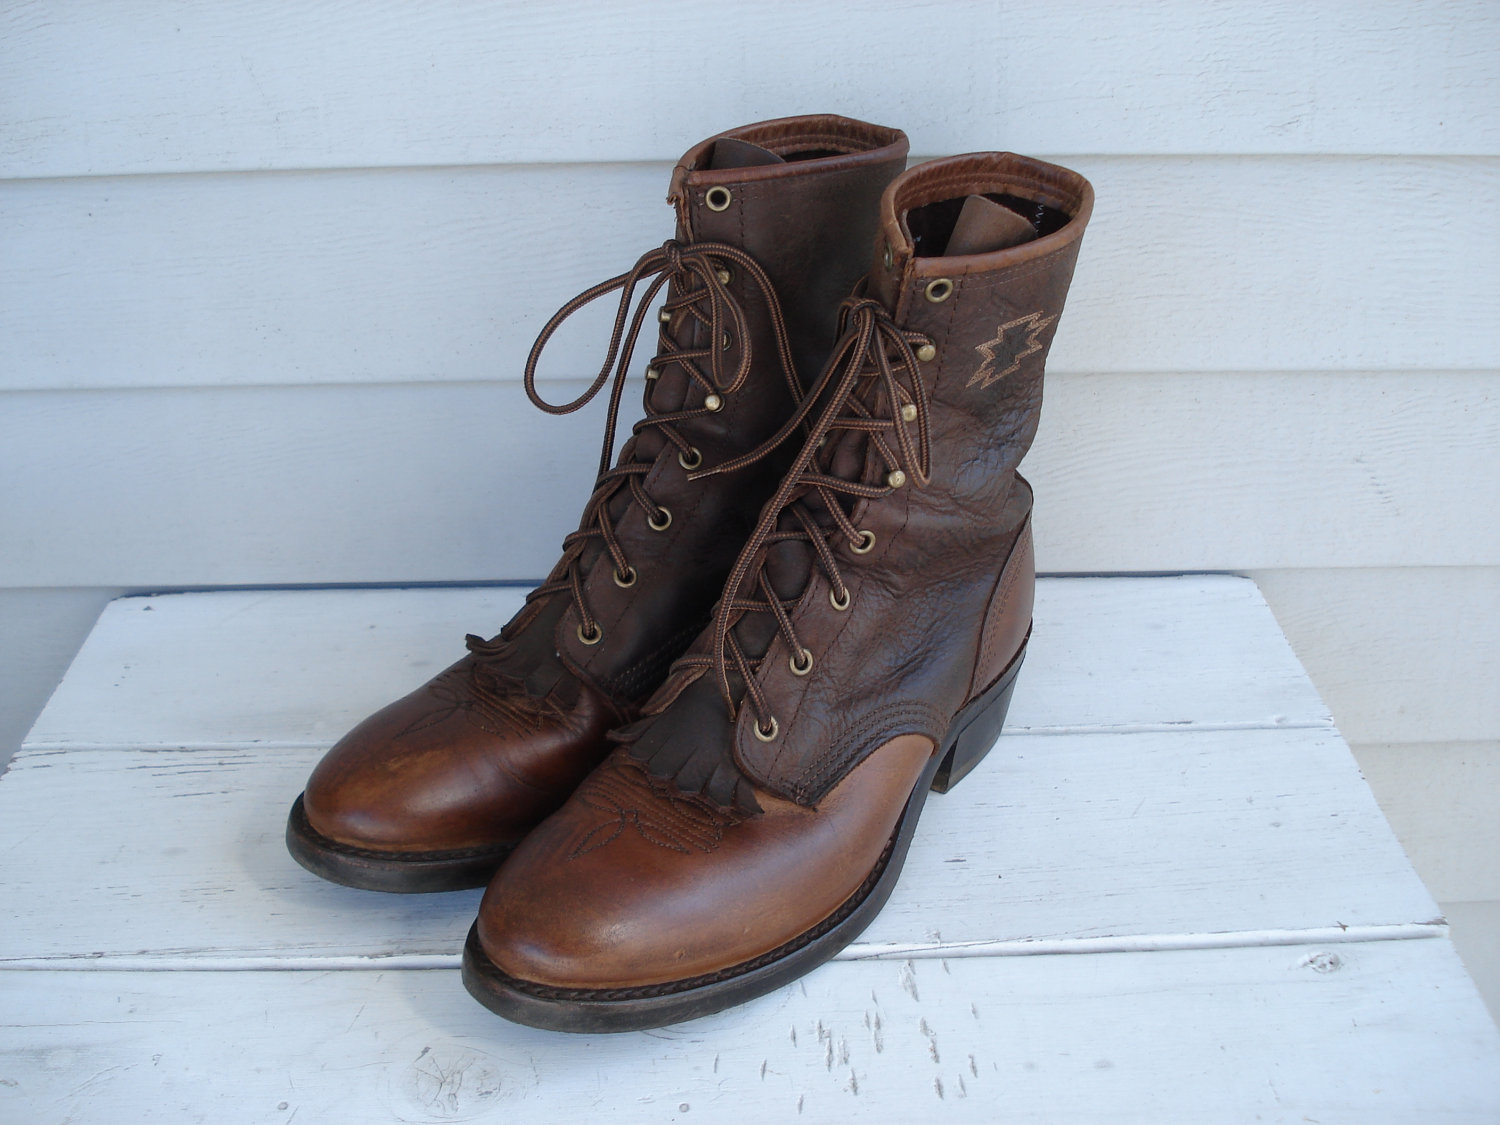 Womens Leather Lace Up Boots yMTZ7Fau